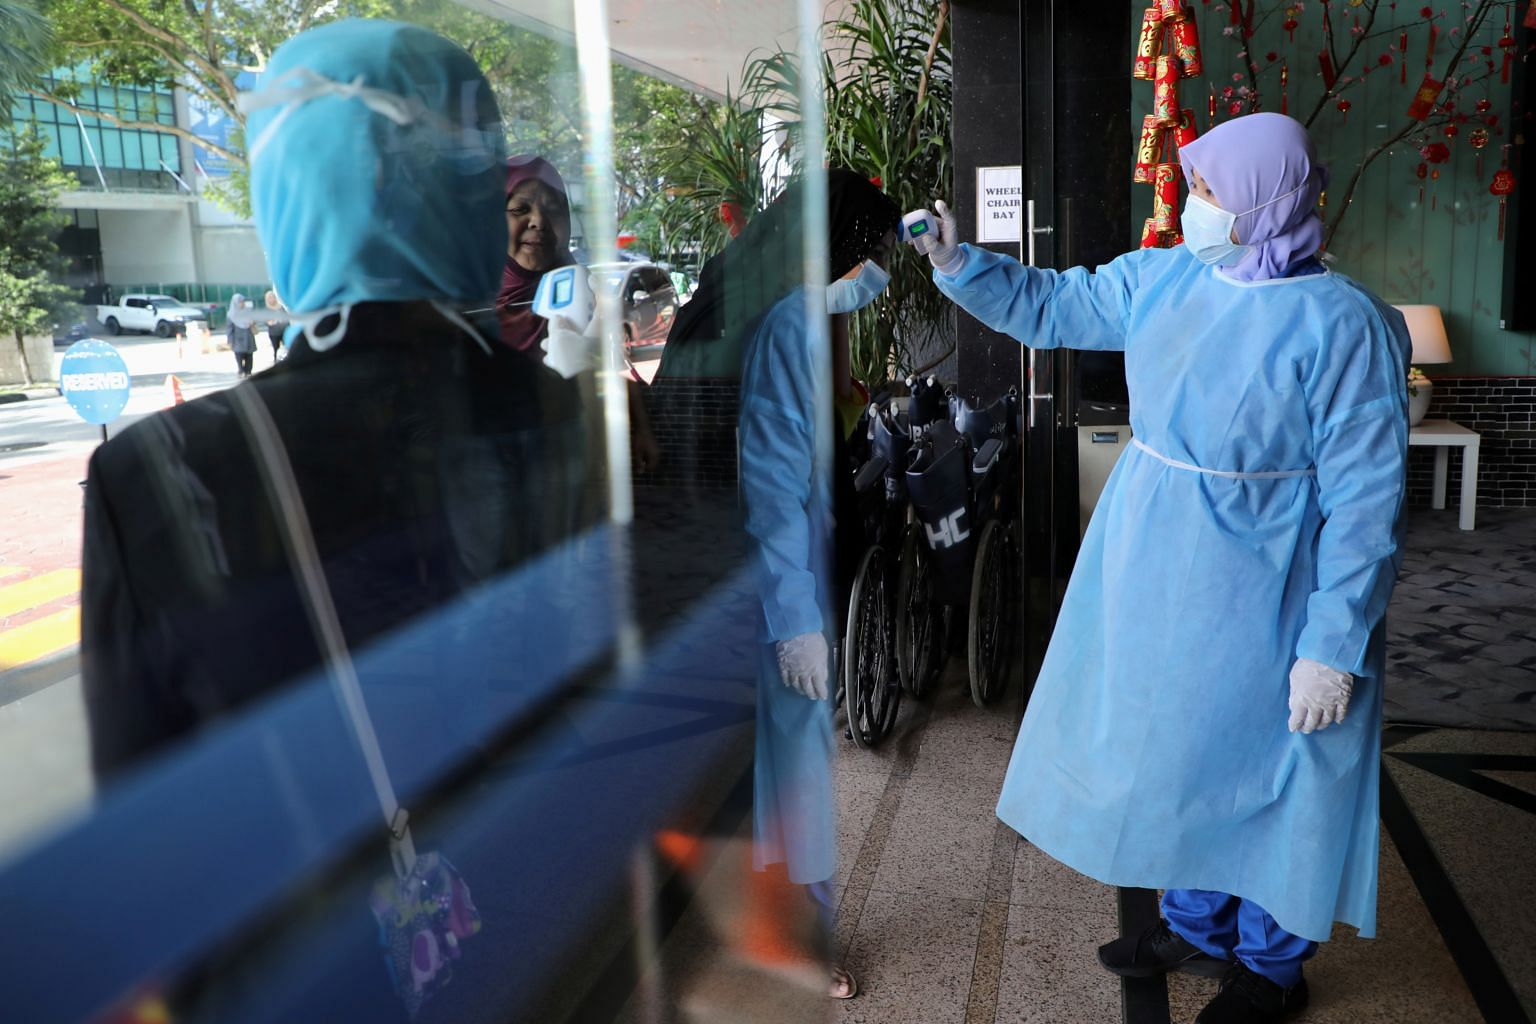 Malaysia Confirms First Citizen With Coronavirus Man Was In S Pore For Meeting With China Colleagues Last Month Se Asia News Top Stories The Straits Times